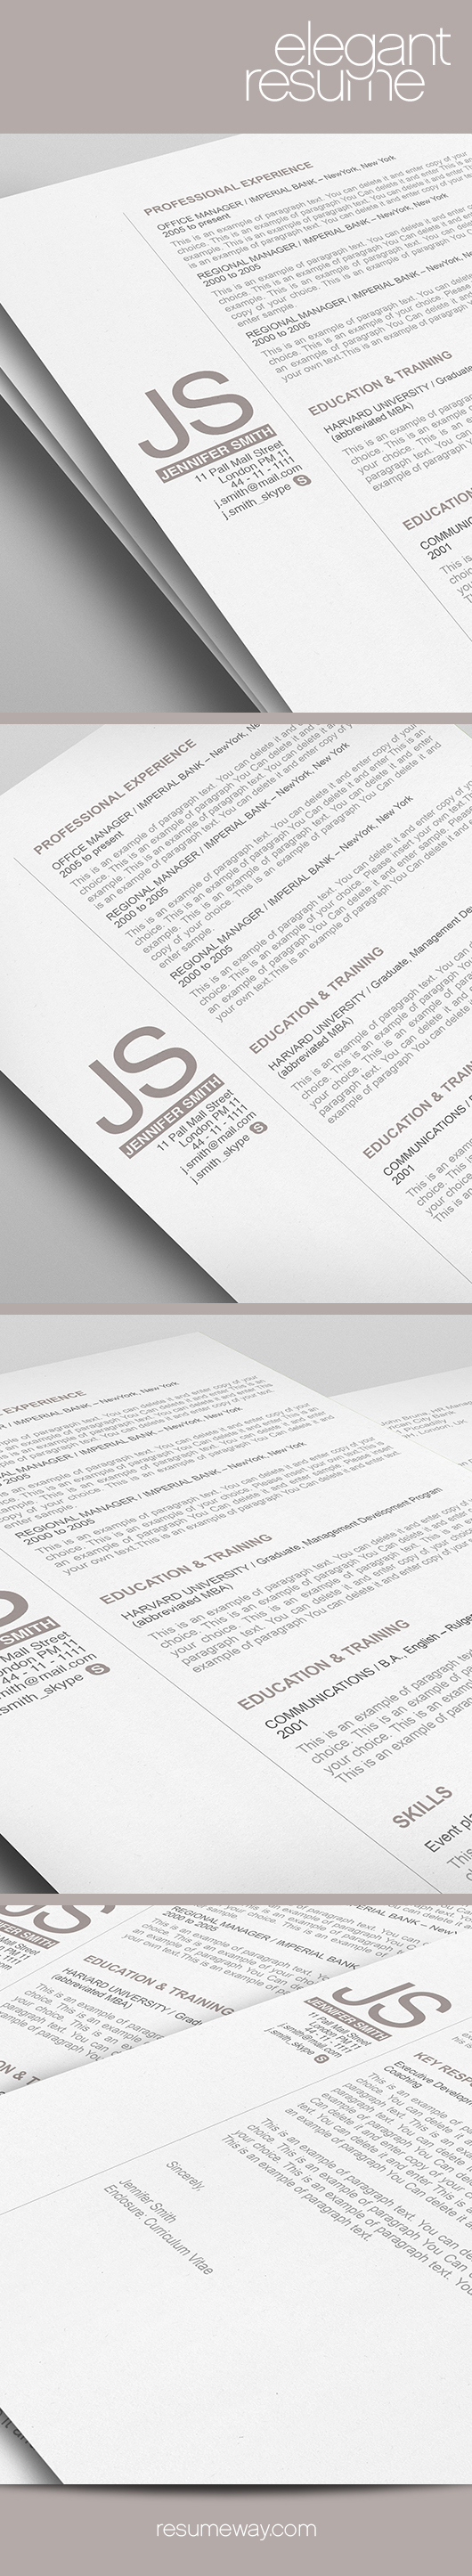 free cover letter templates for resumes Elegant